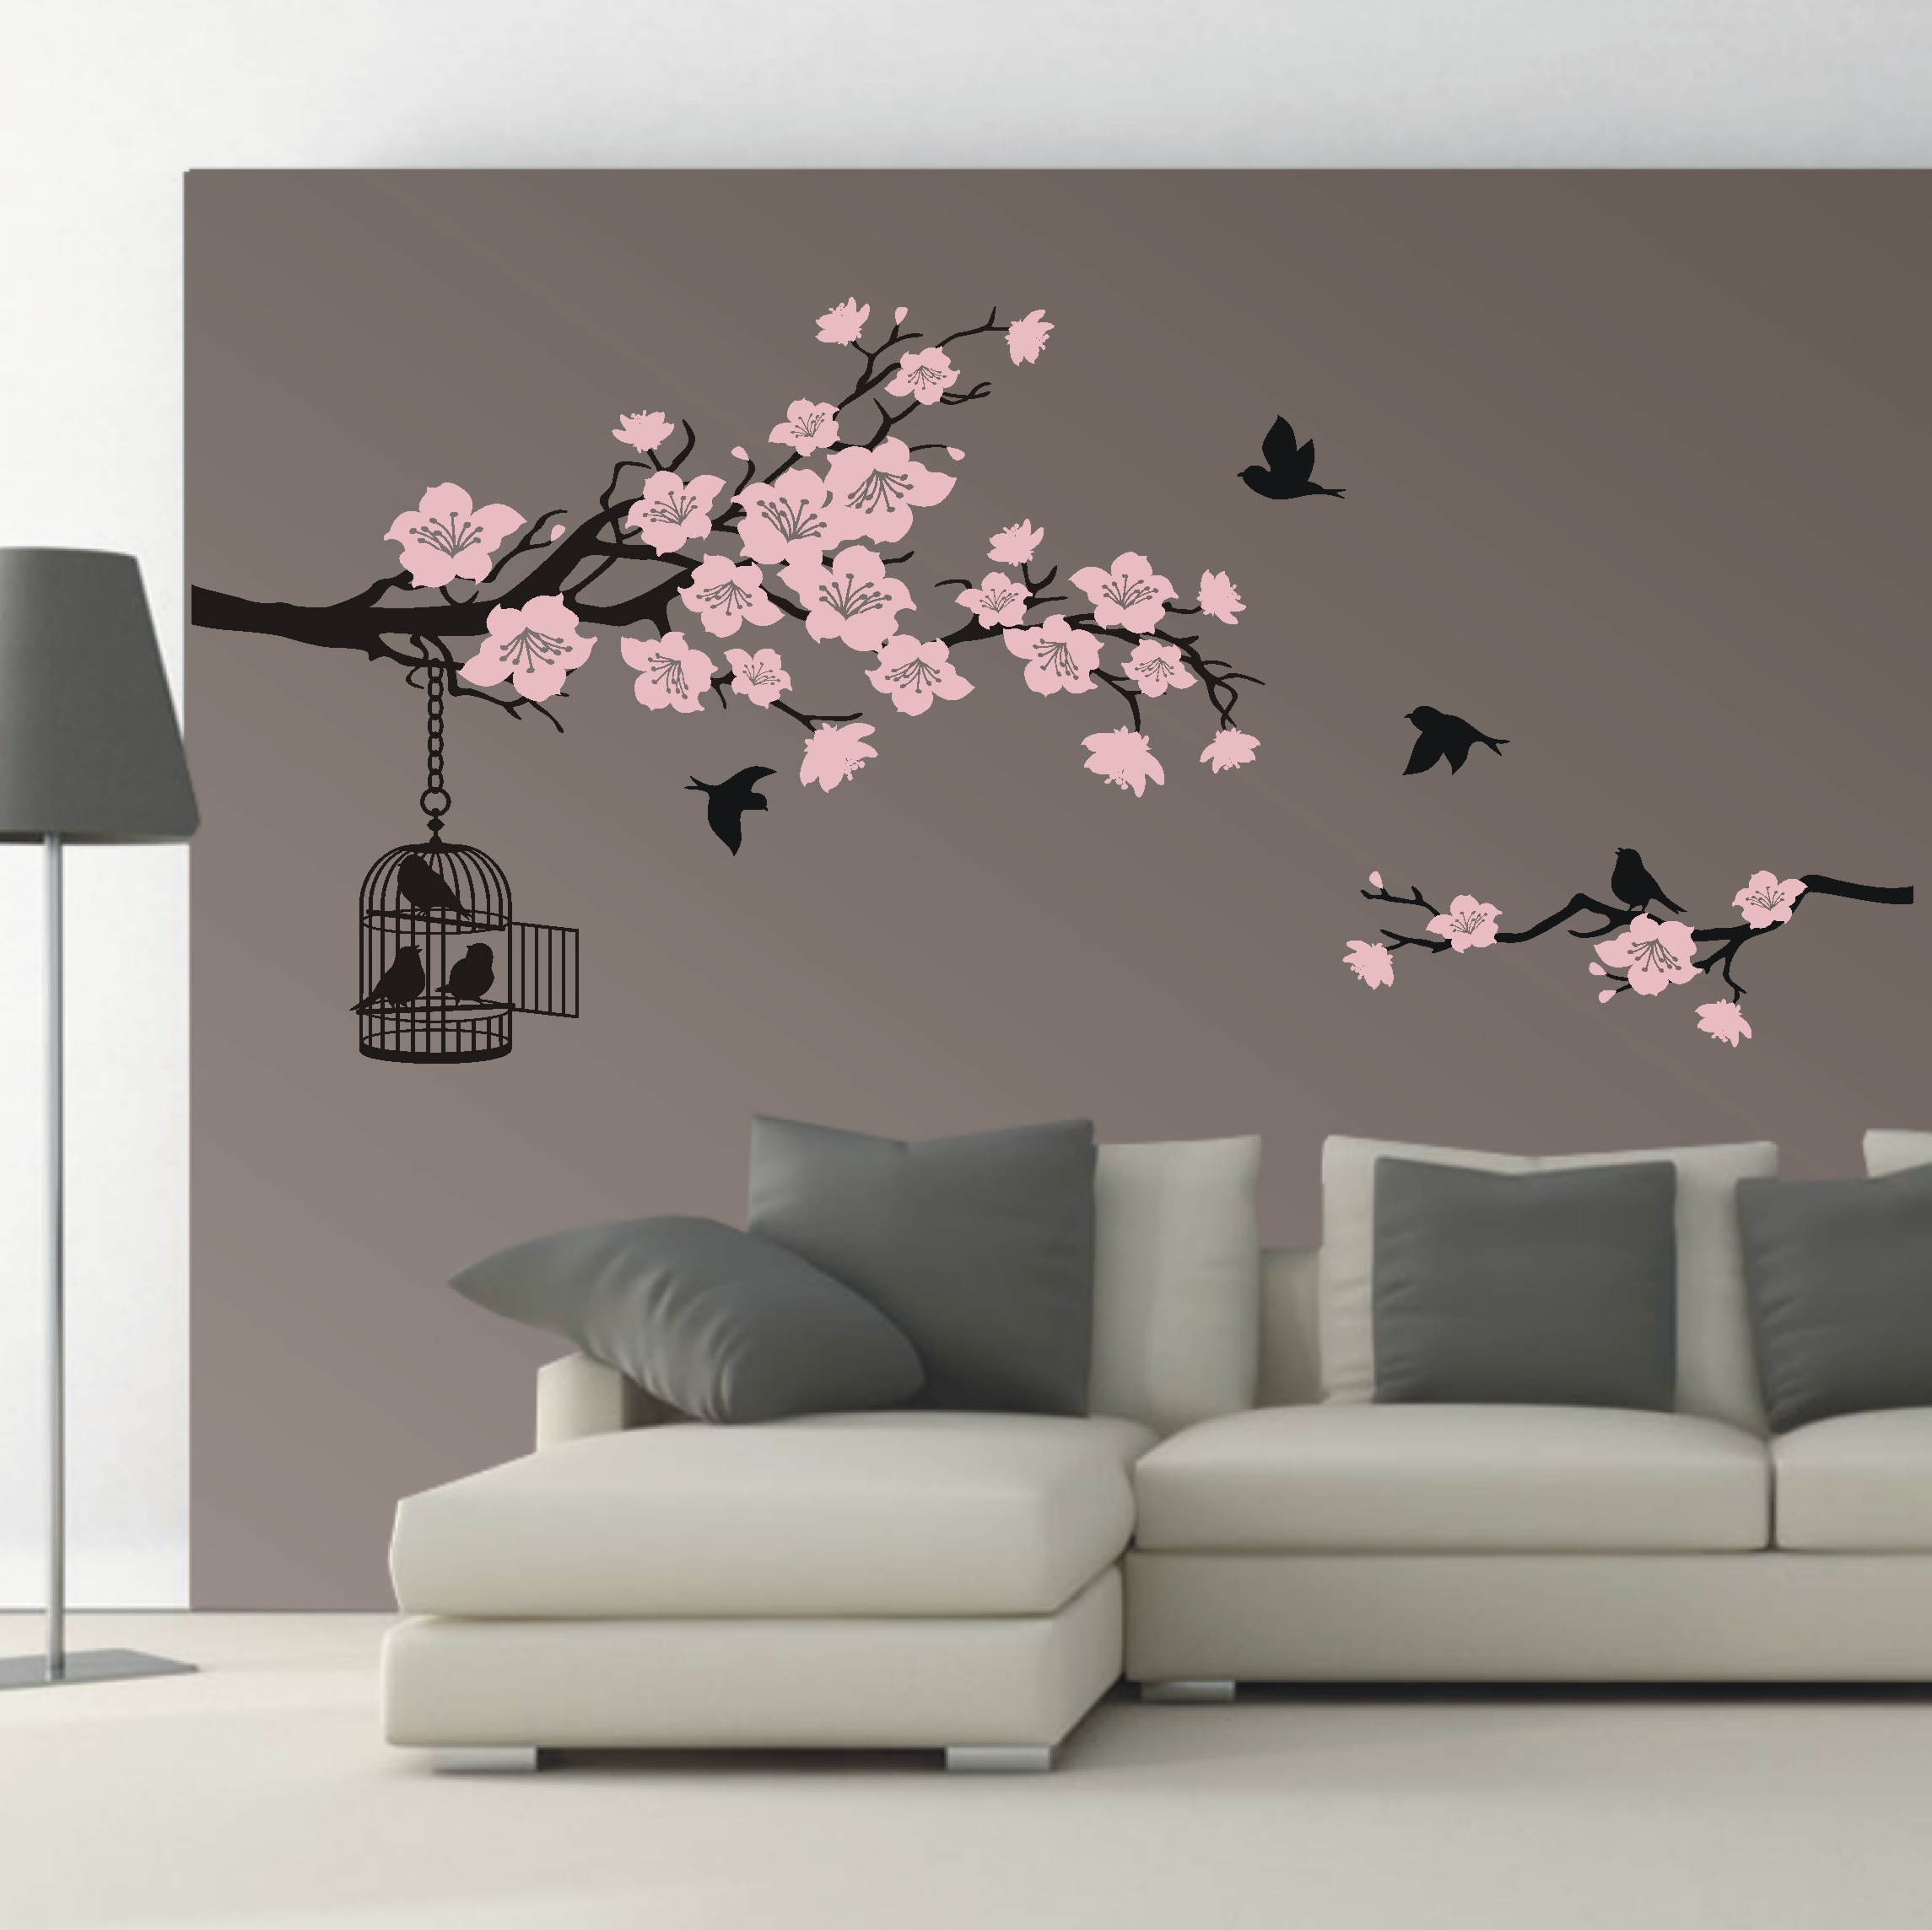 deko shop wandtattoo kirschbl ten ast 2 farbig deko shop. Black Bedroom Furniture Sets. Home Design Ideas